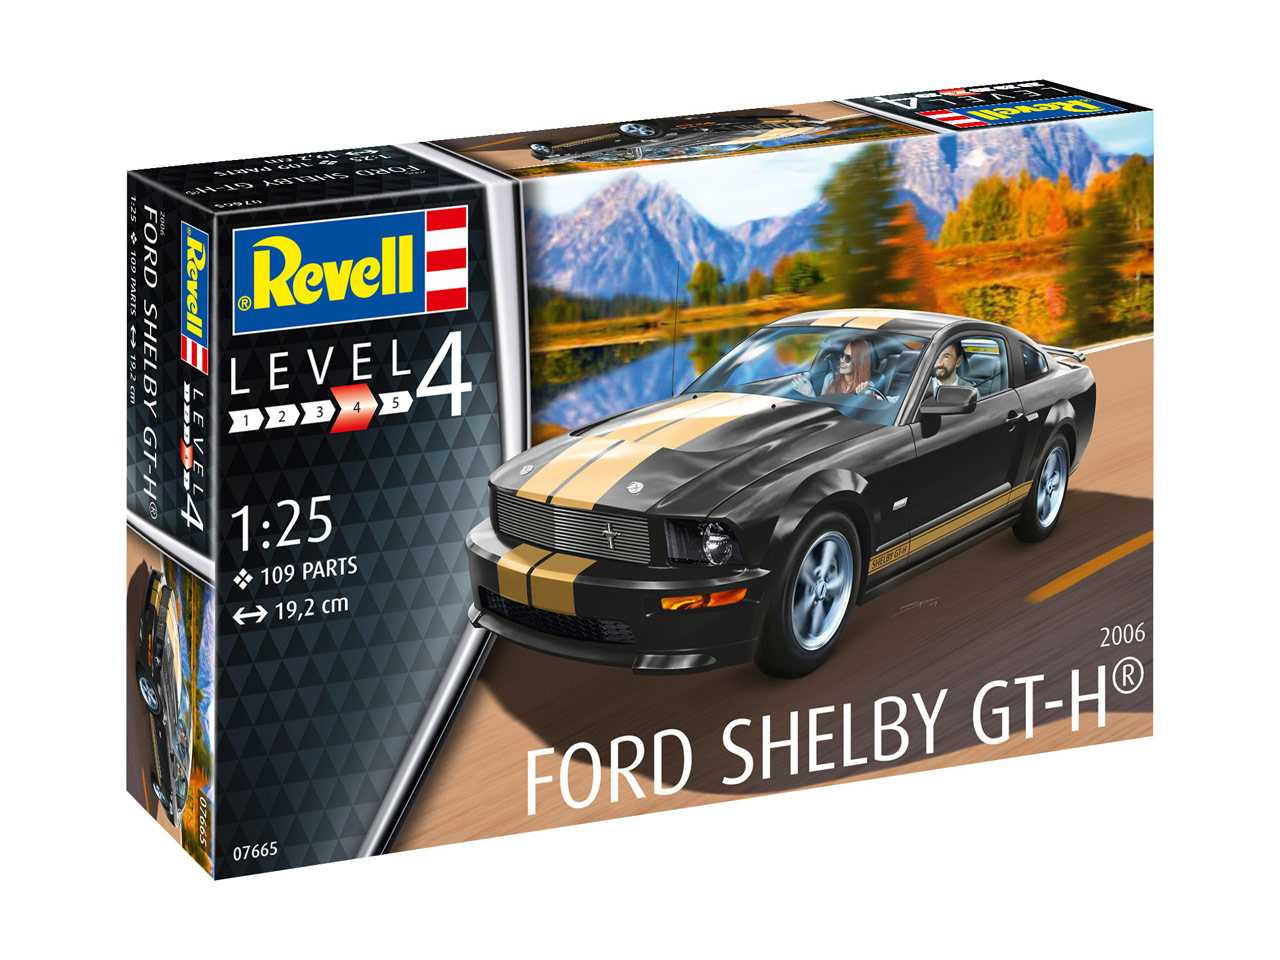 1:25 Shelby GT-H (2006)